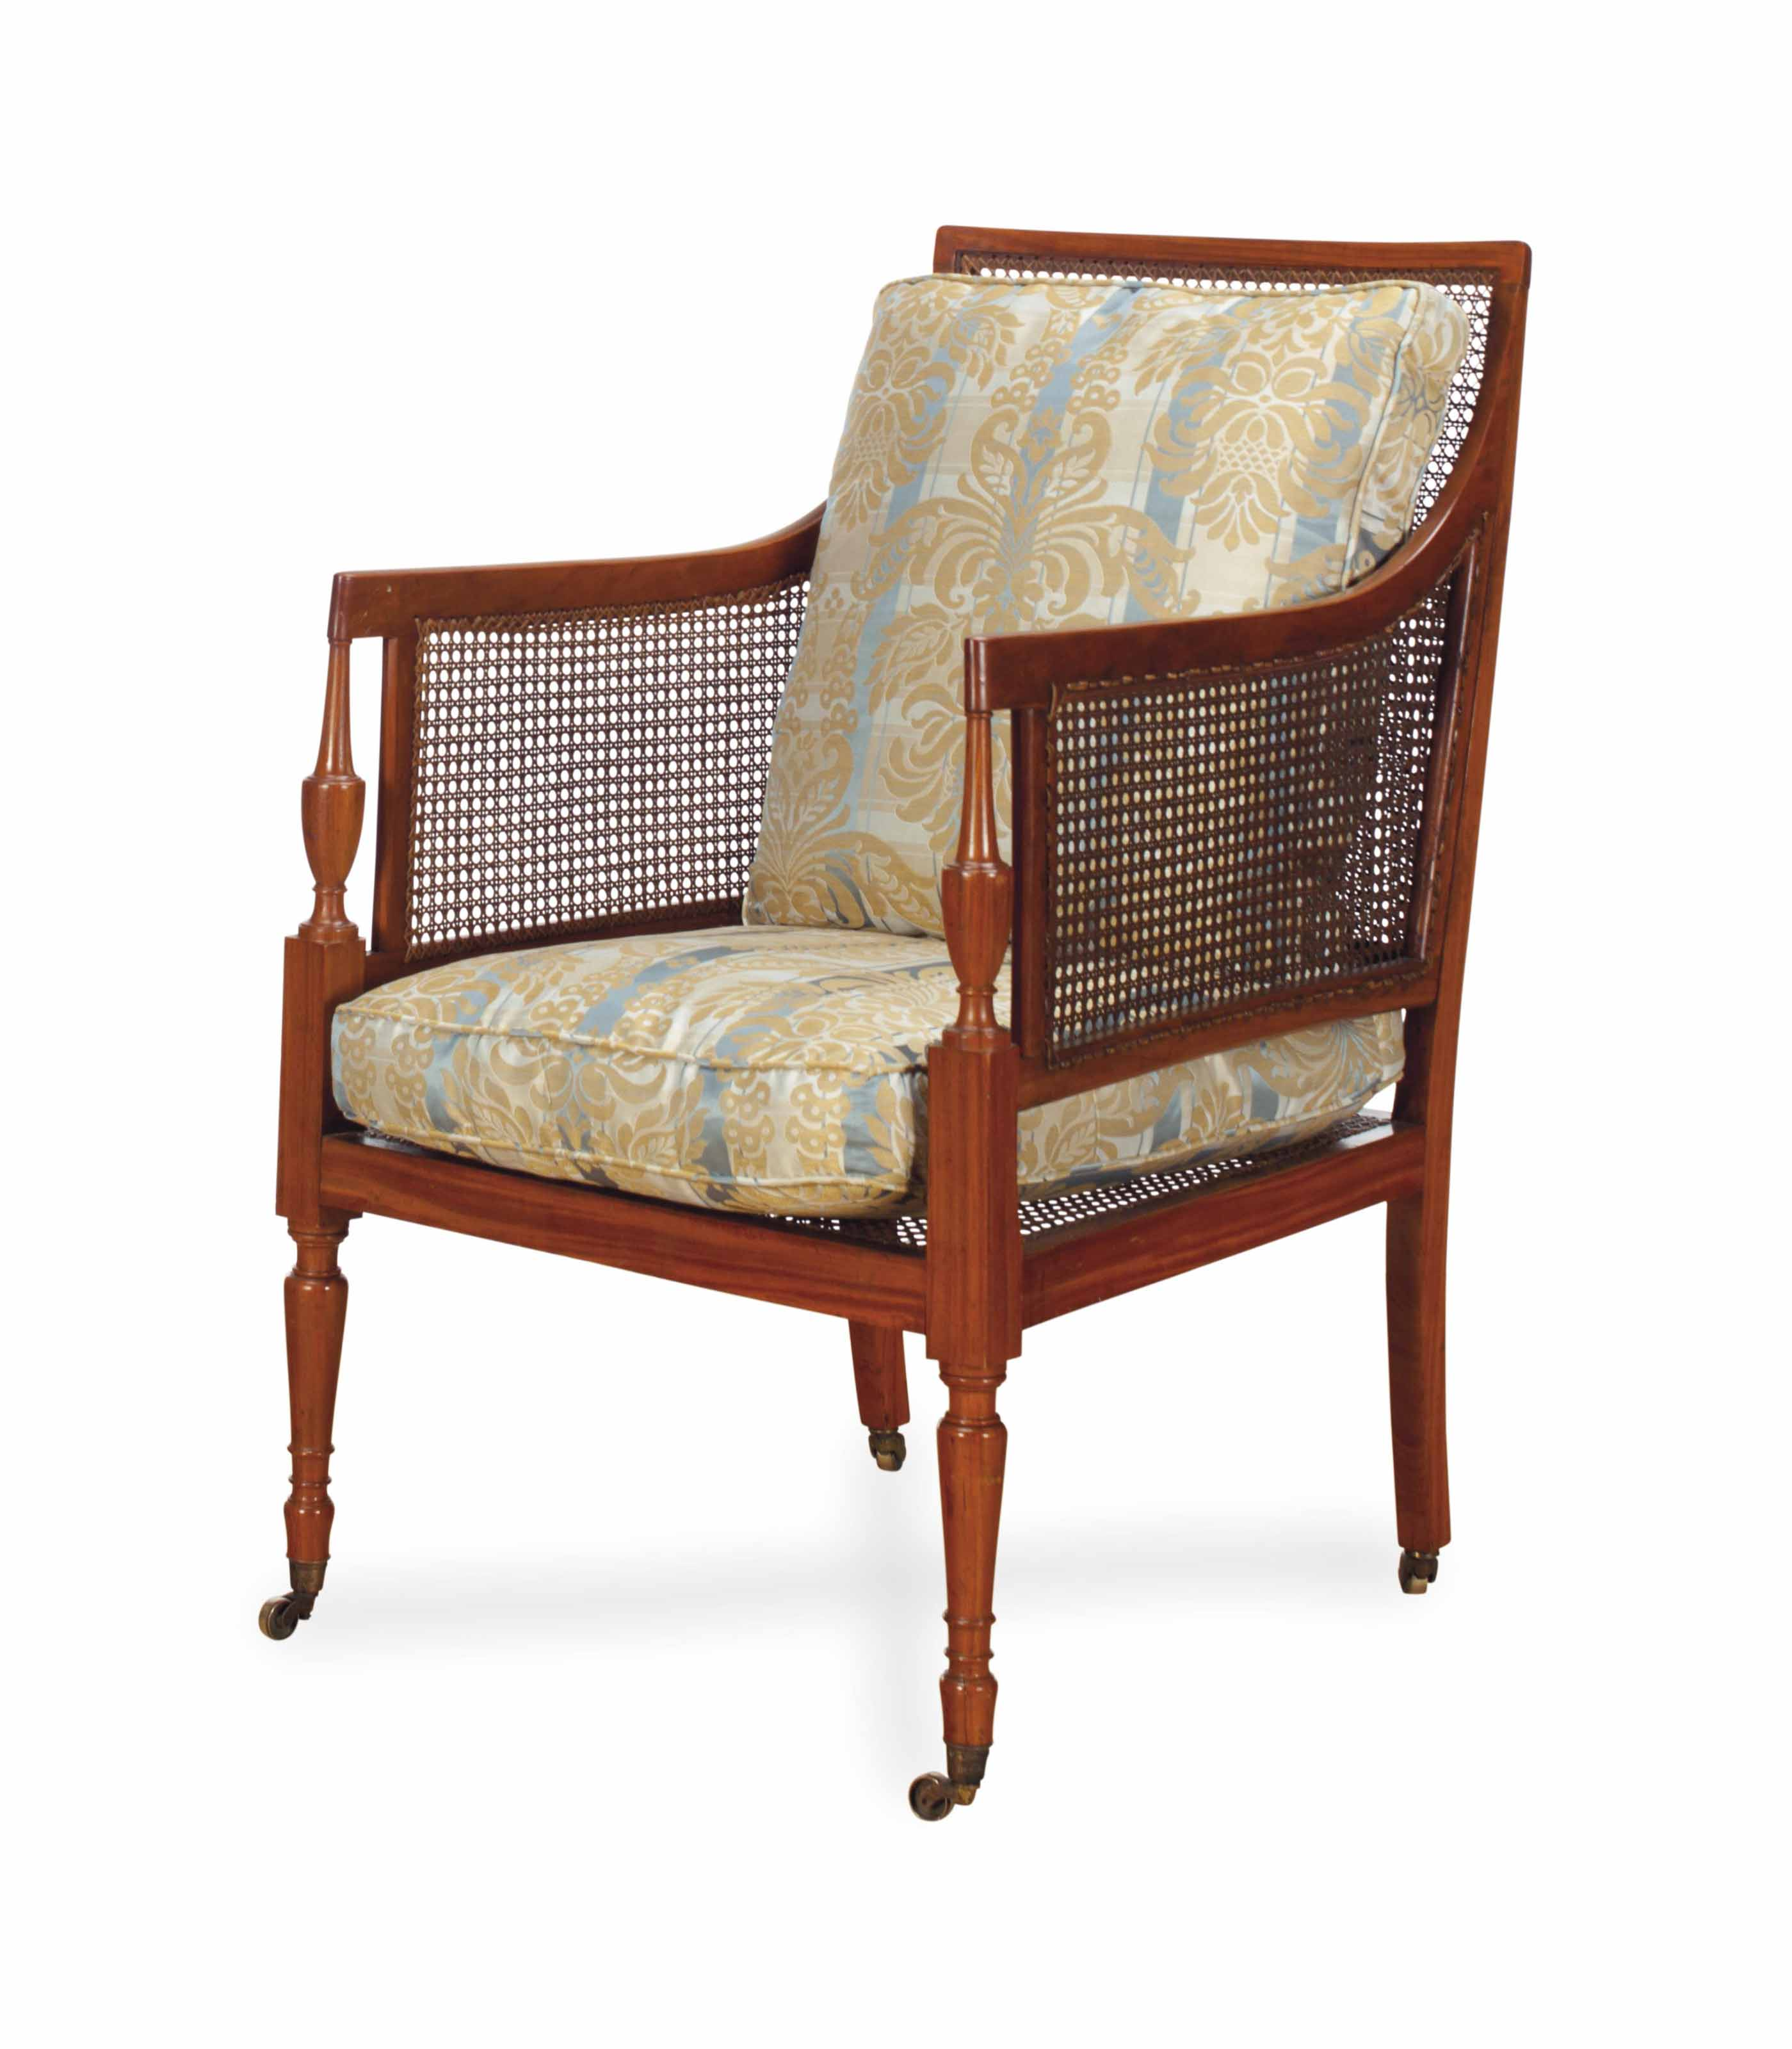 A LATE REGENCY SATINWOOD AND C